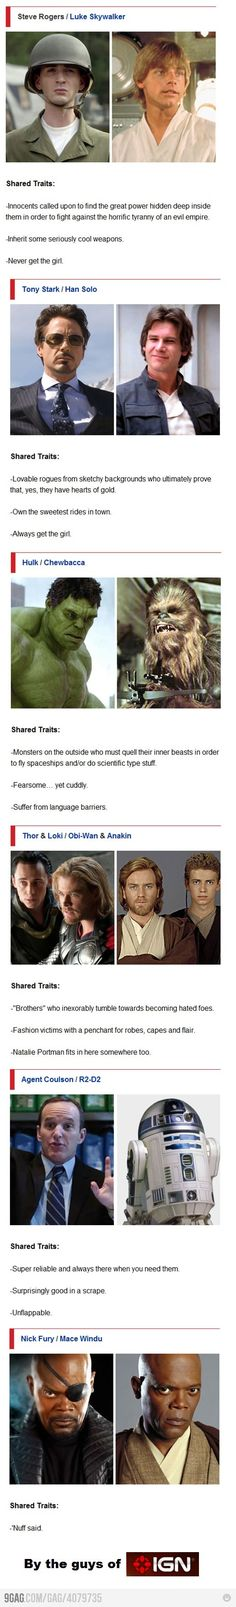 Avengers vs Star Wars...